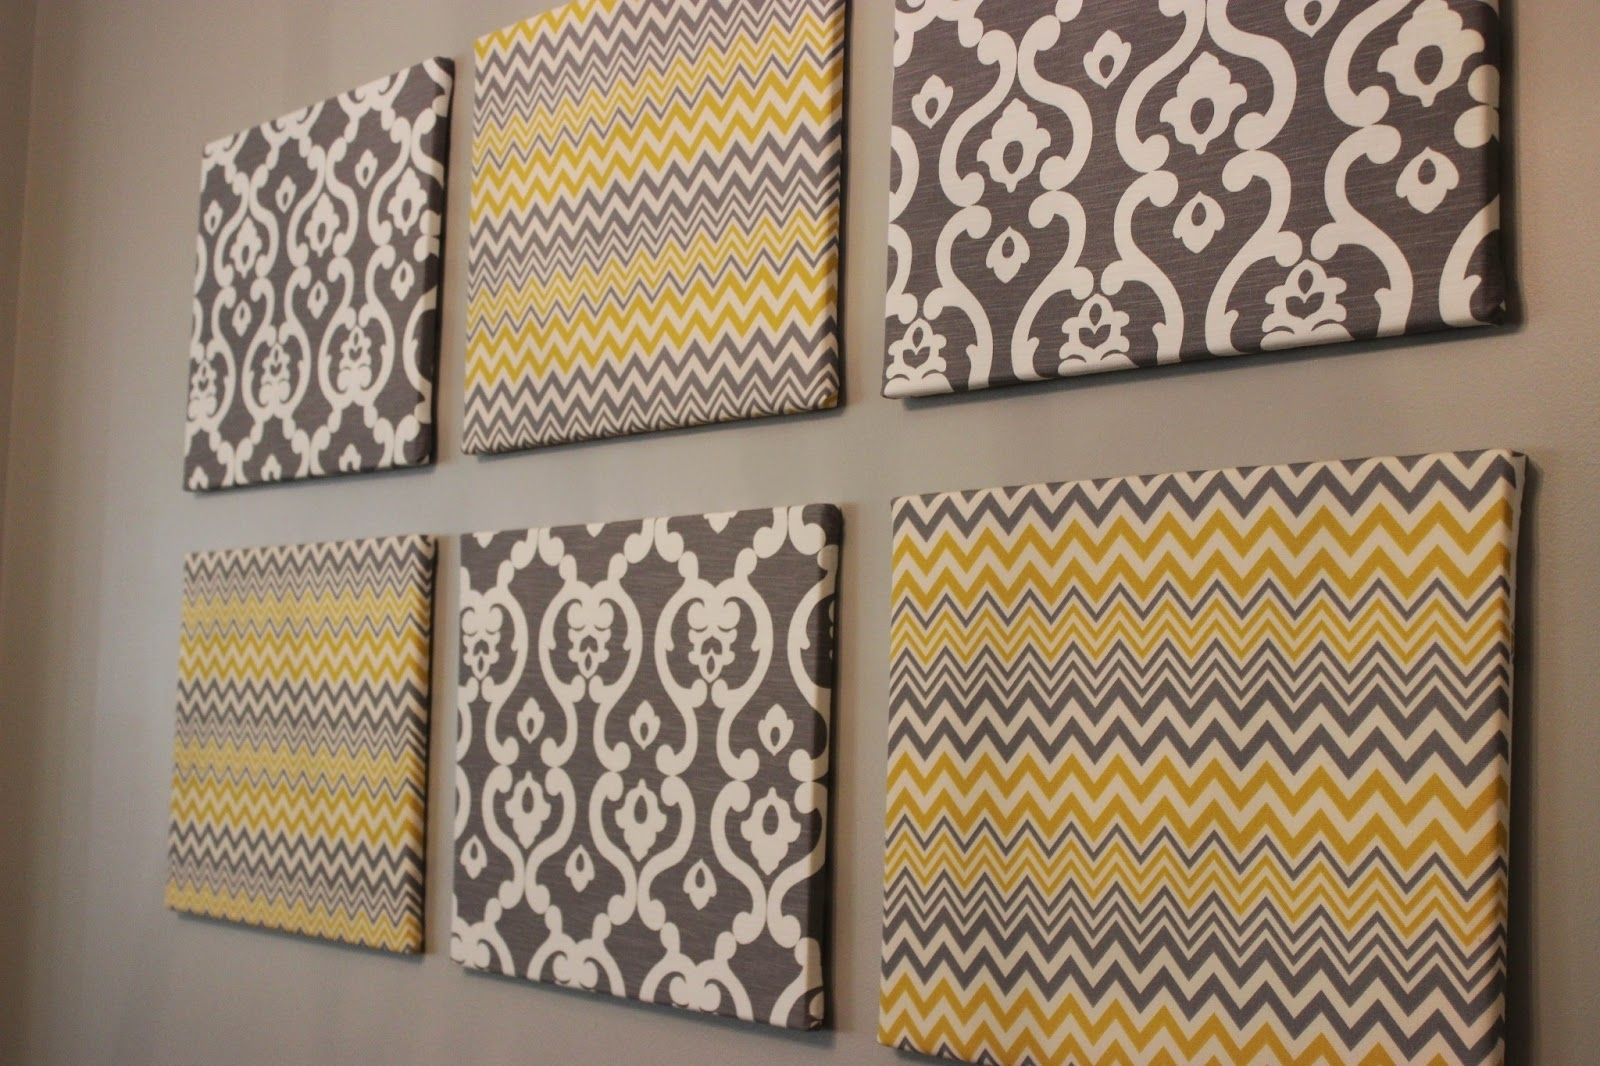 Sleek Diy Wall Conquers Painted Canvas A Pop Plus Home Decorating Pertaining To Most Recently Released Fabric Wall Art Canvas (Gallery 11 of 15)